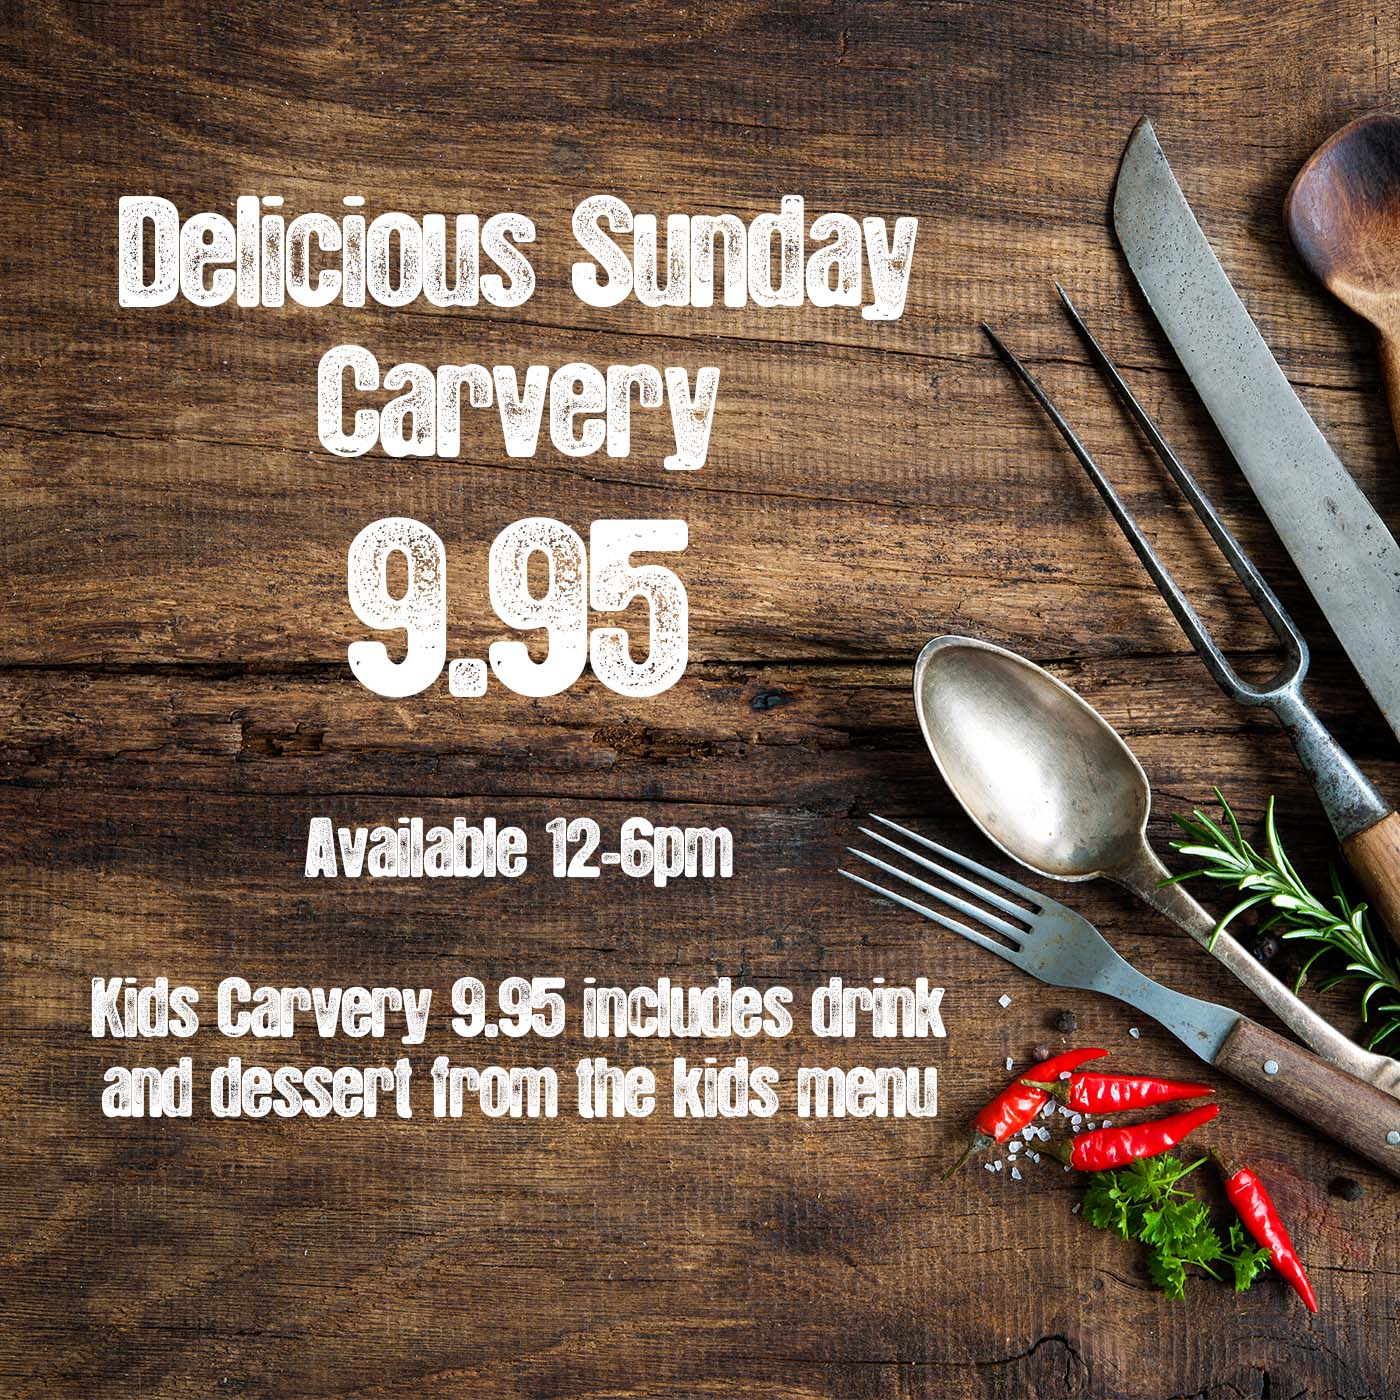 Sunday Carvery - Web Offer - Jan 2019